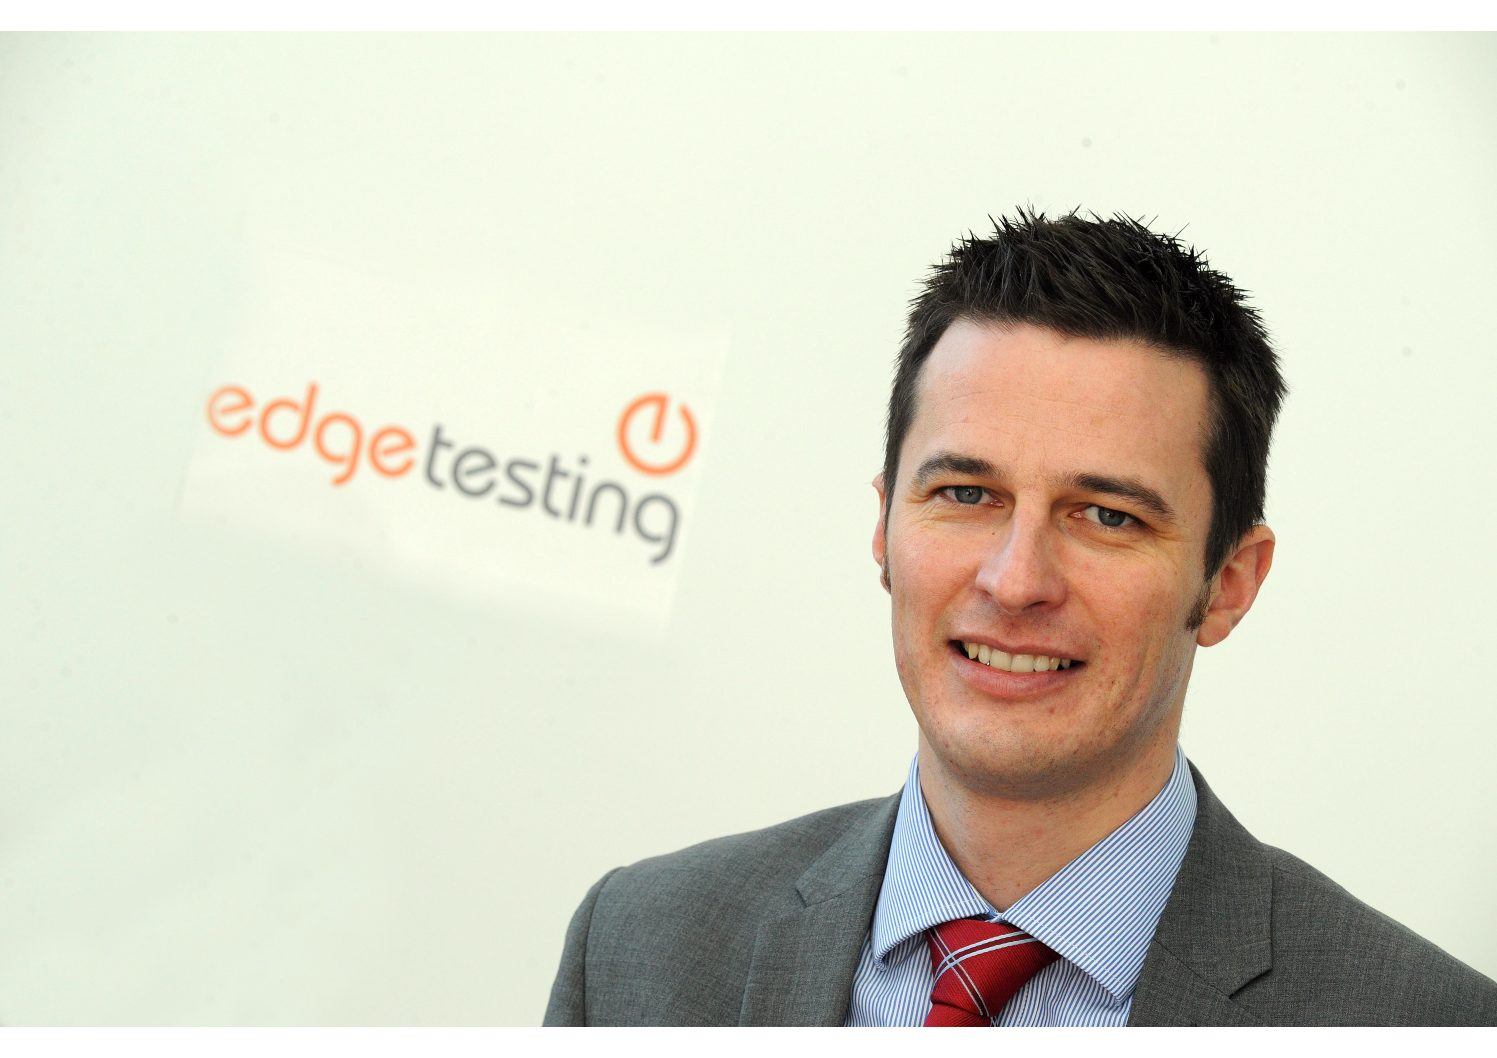 Edge Testing secures place on CCS Quality Assurance and Testing Framework